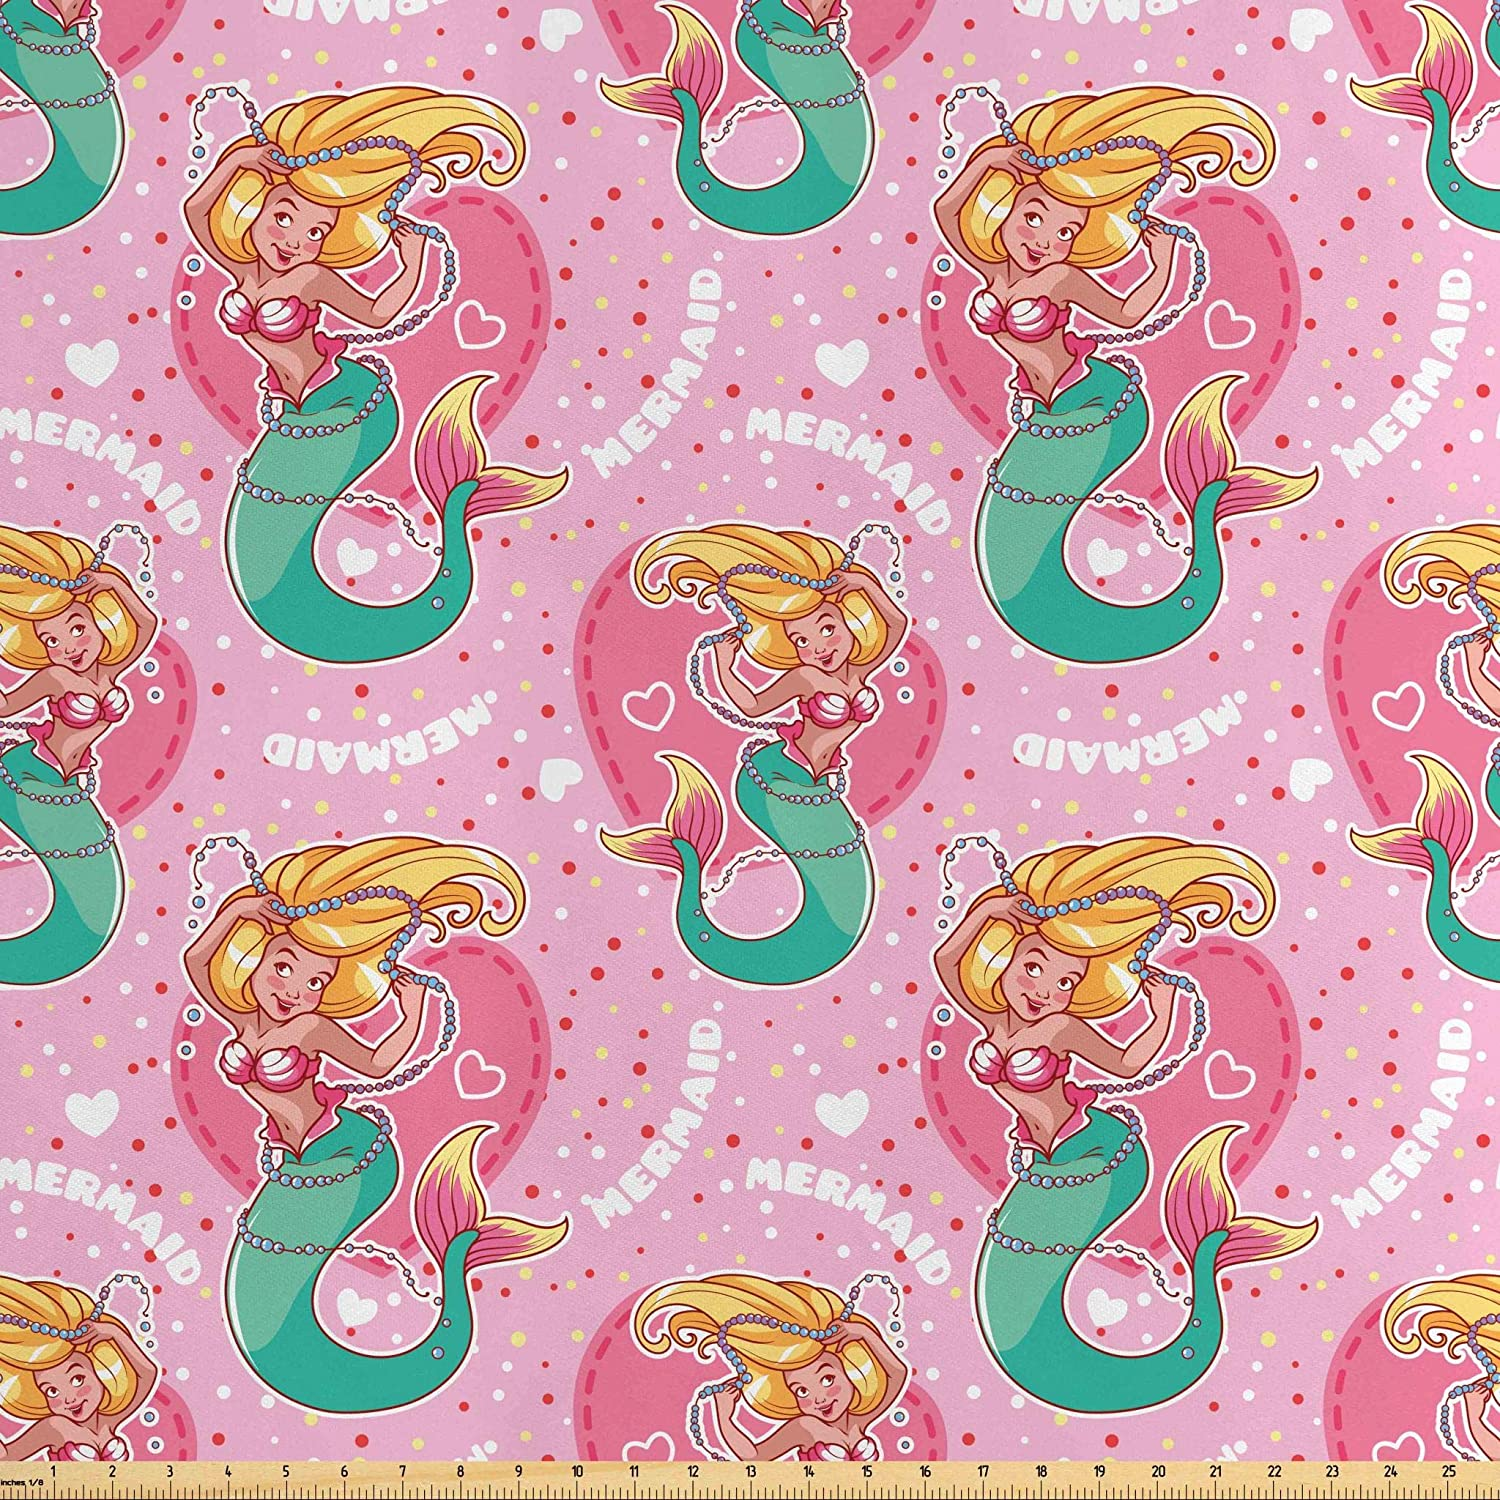 Lunarable Mermaid Fabric by The Yard, Pink Hearts and Mermaid Mythological Tale Underwater Life, Decorative Satin Fabric for Home Textiles and Crafts, 1 Yard, Sea Green Pink Yellow